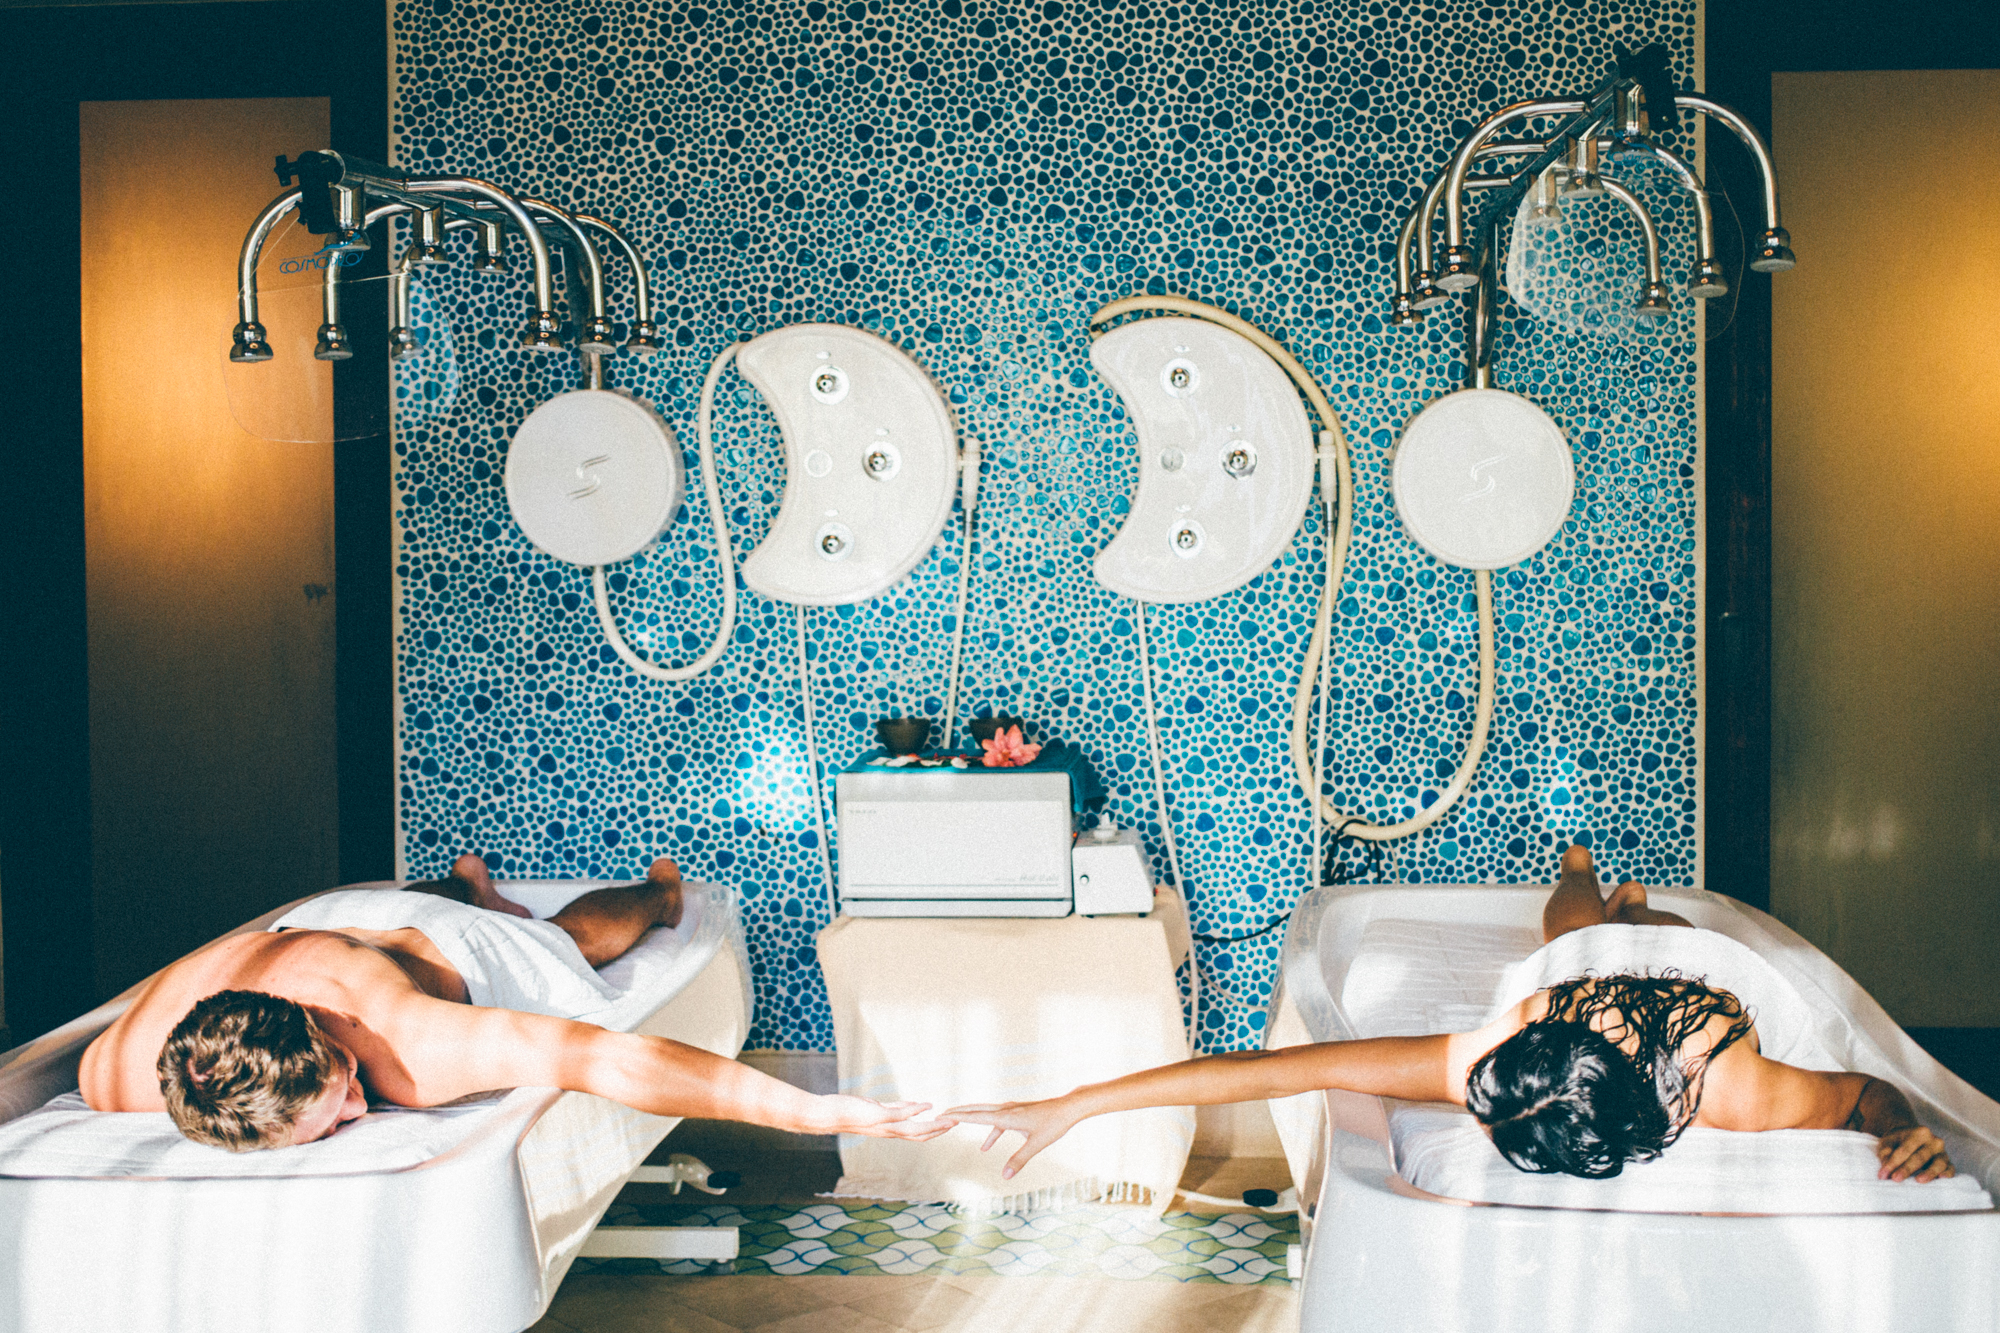 Our Vichy shower experience in the Rainforest Temple